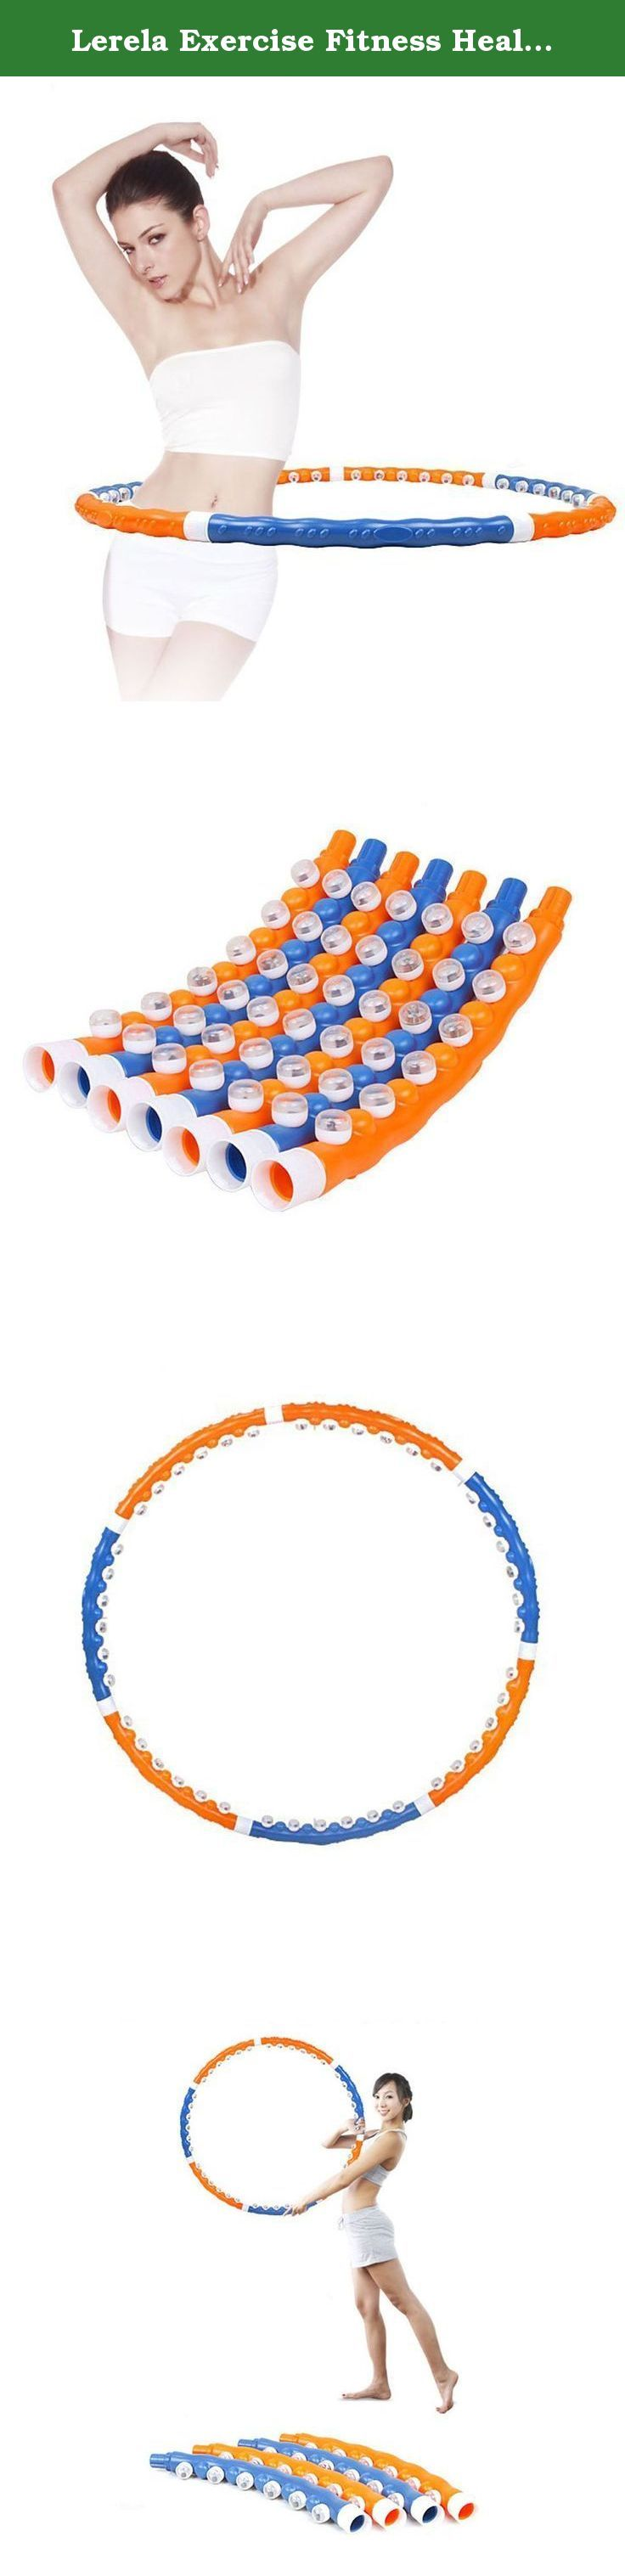 Lerela Exercise Fitness Health Magnetic Hula Hoop Massage Ball Weighted Hula Hoops 1.1kg 2.4lb. Great for adults who want to lose and tone their abdominal area Diamter: 38.5 inch, weight 1.1 kg Maximizes weight loss and improves workout results Easy to assemble and disassemble, 7 detachable sections for easy storage and transport Great way to have fun and adopt a healthy lifestyle .